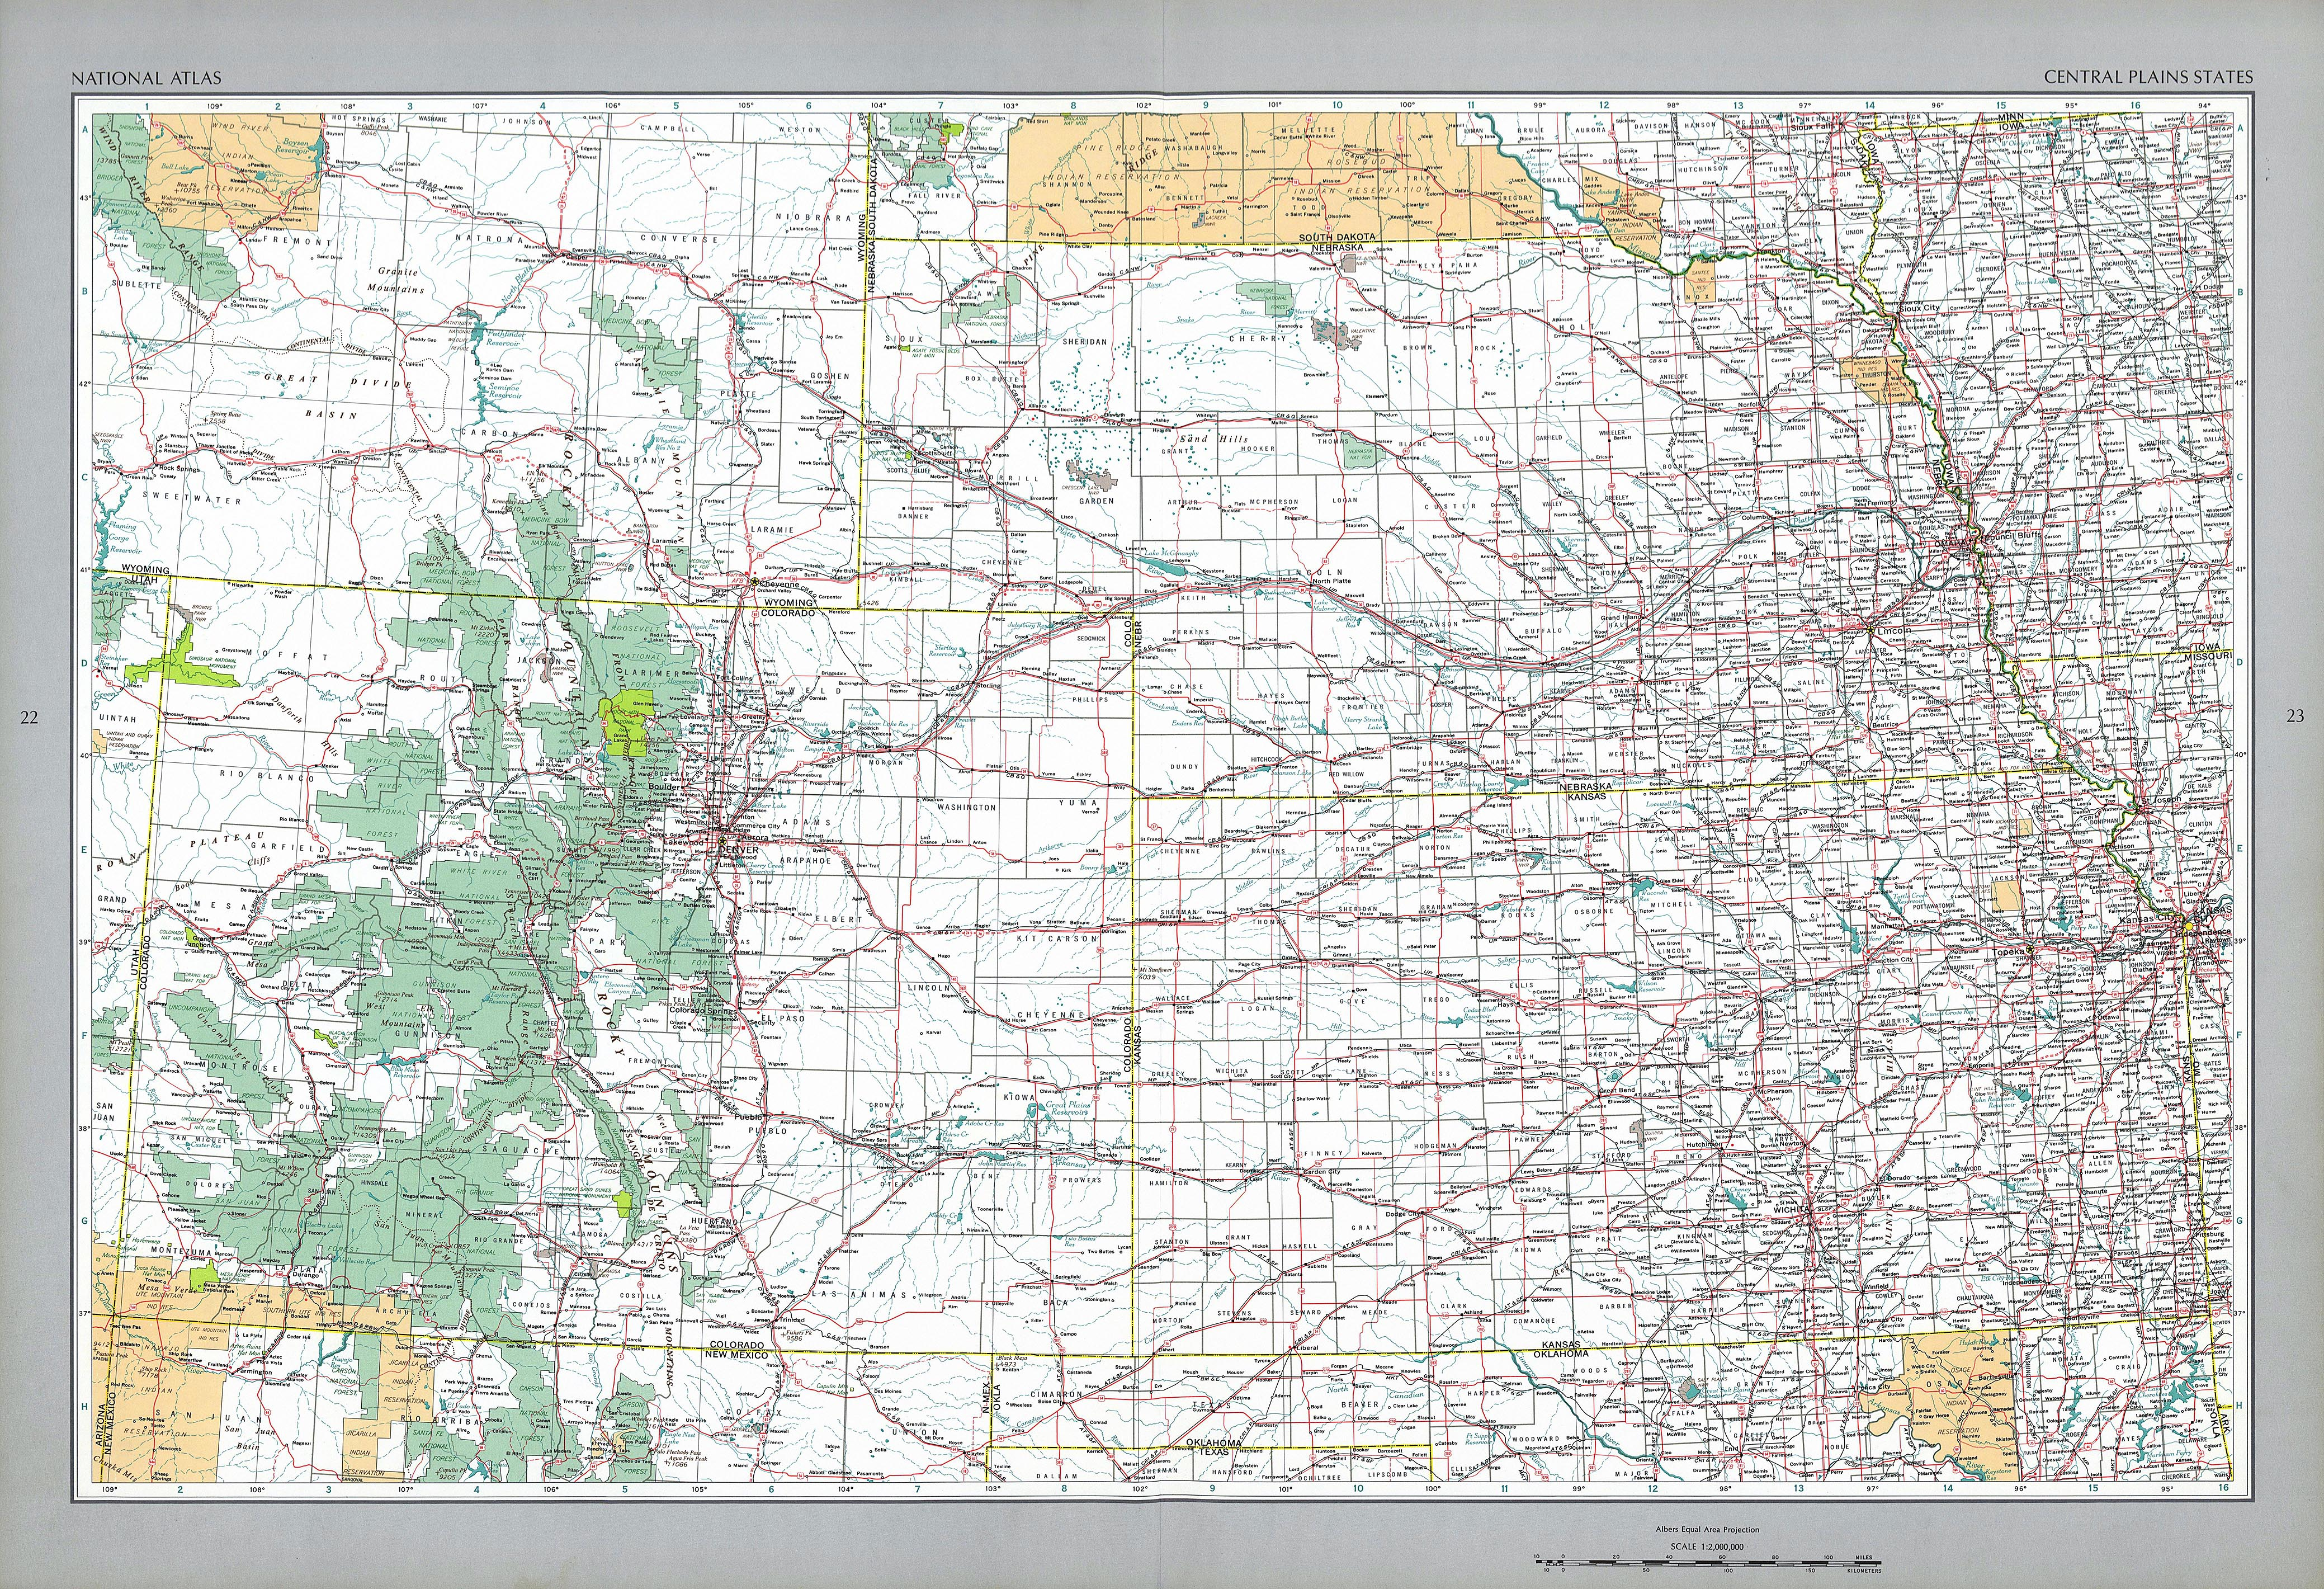 The National Atlas Of The United States Of America Perry - Us central plains map